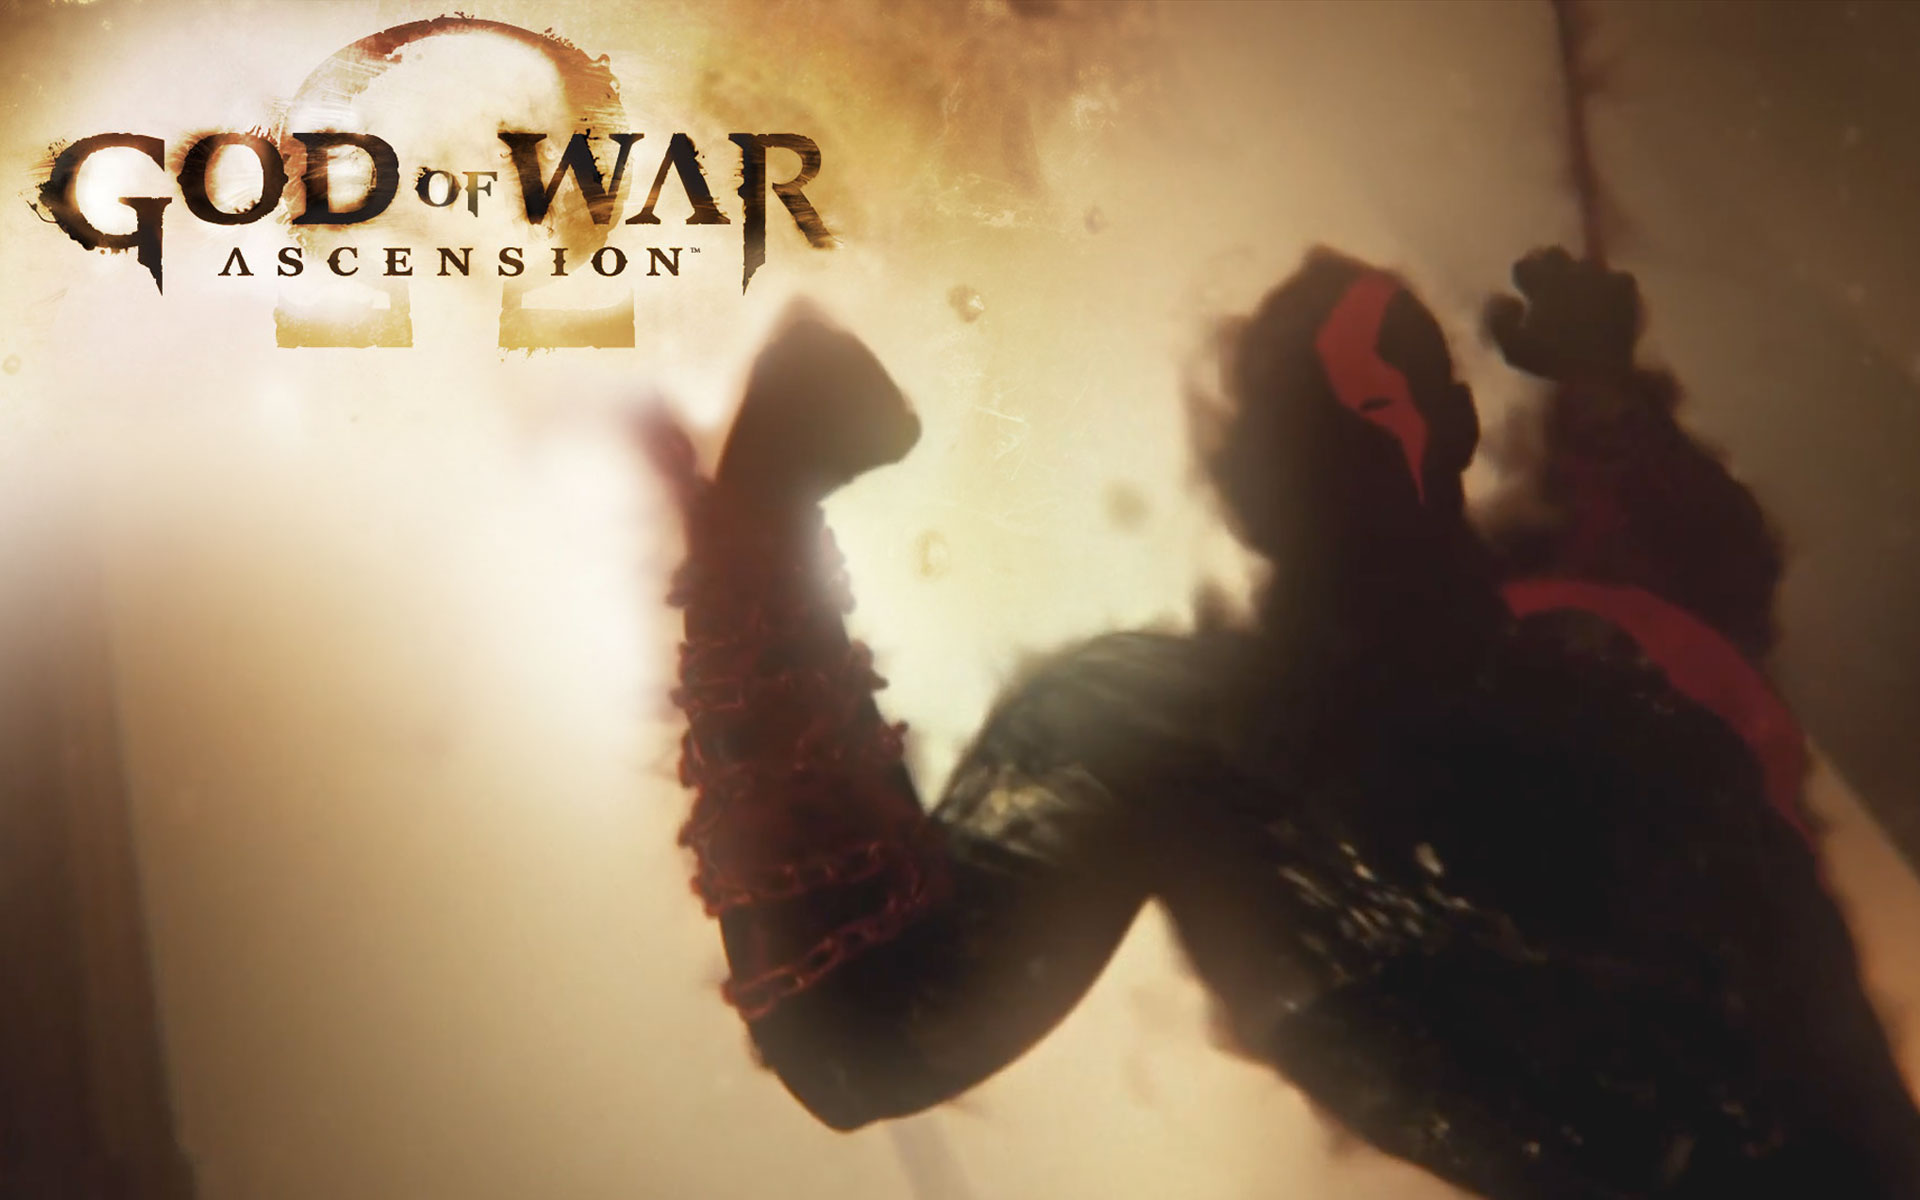 Devil May Cry Wallpaper Hd God Of War Ascension Wallpapers In Hd